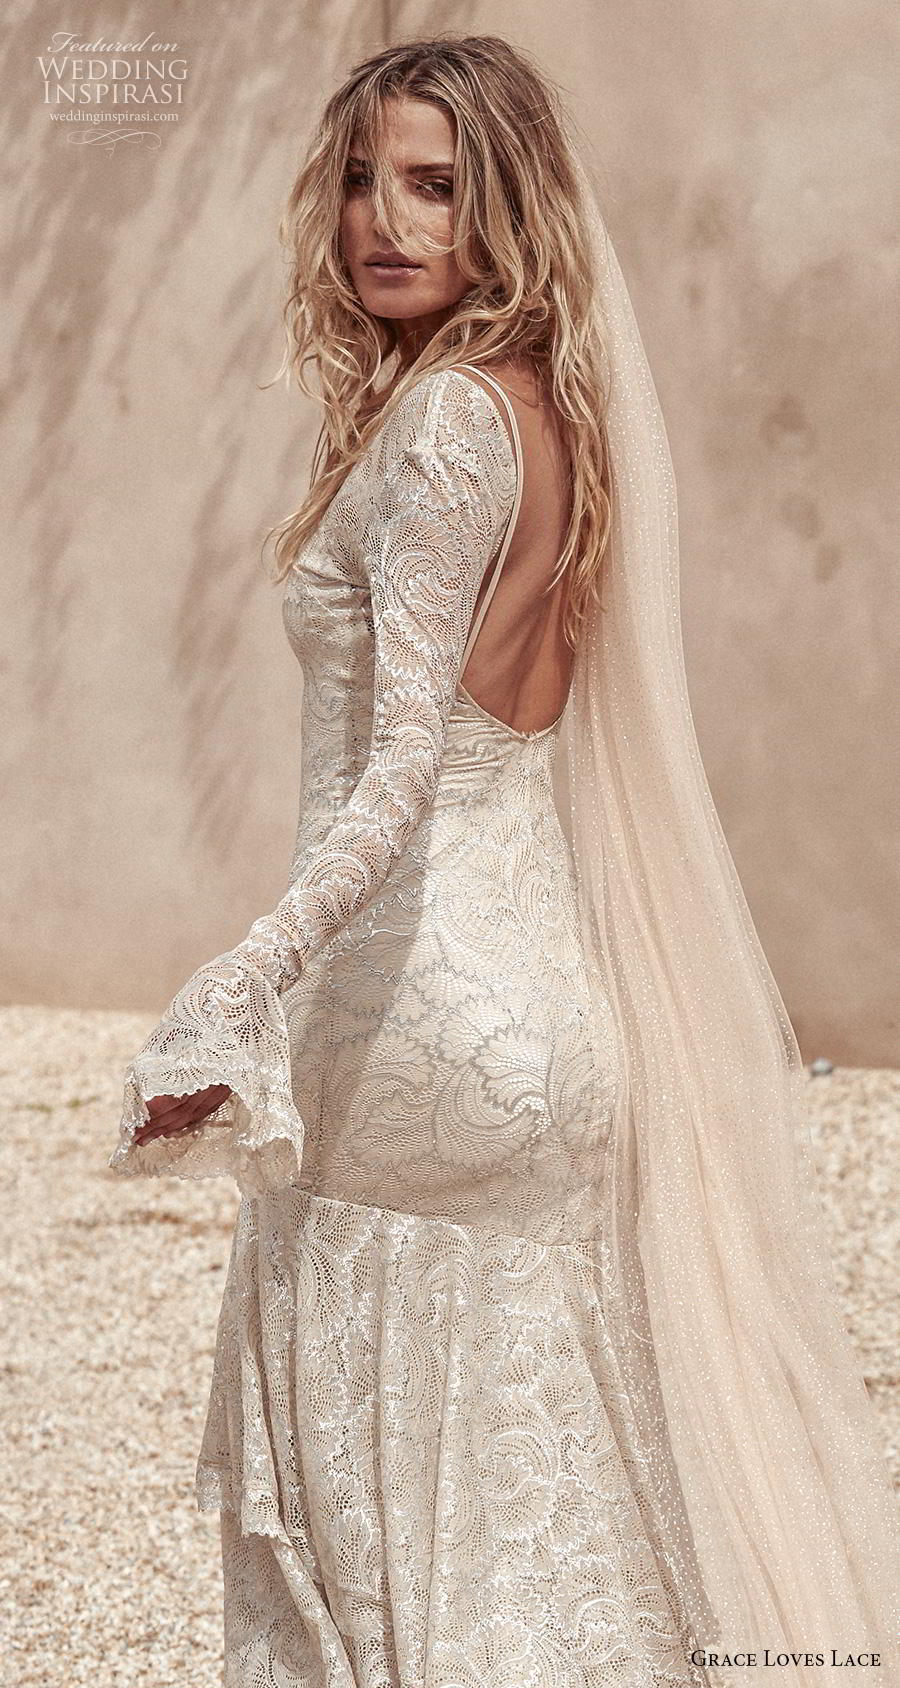 grace love lace 2020 bridal long poet sleeves v neck full embellishment vintage bohemian mermaid wedding dress backless scoop back sweep train (6) zbv